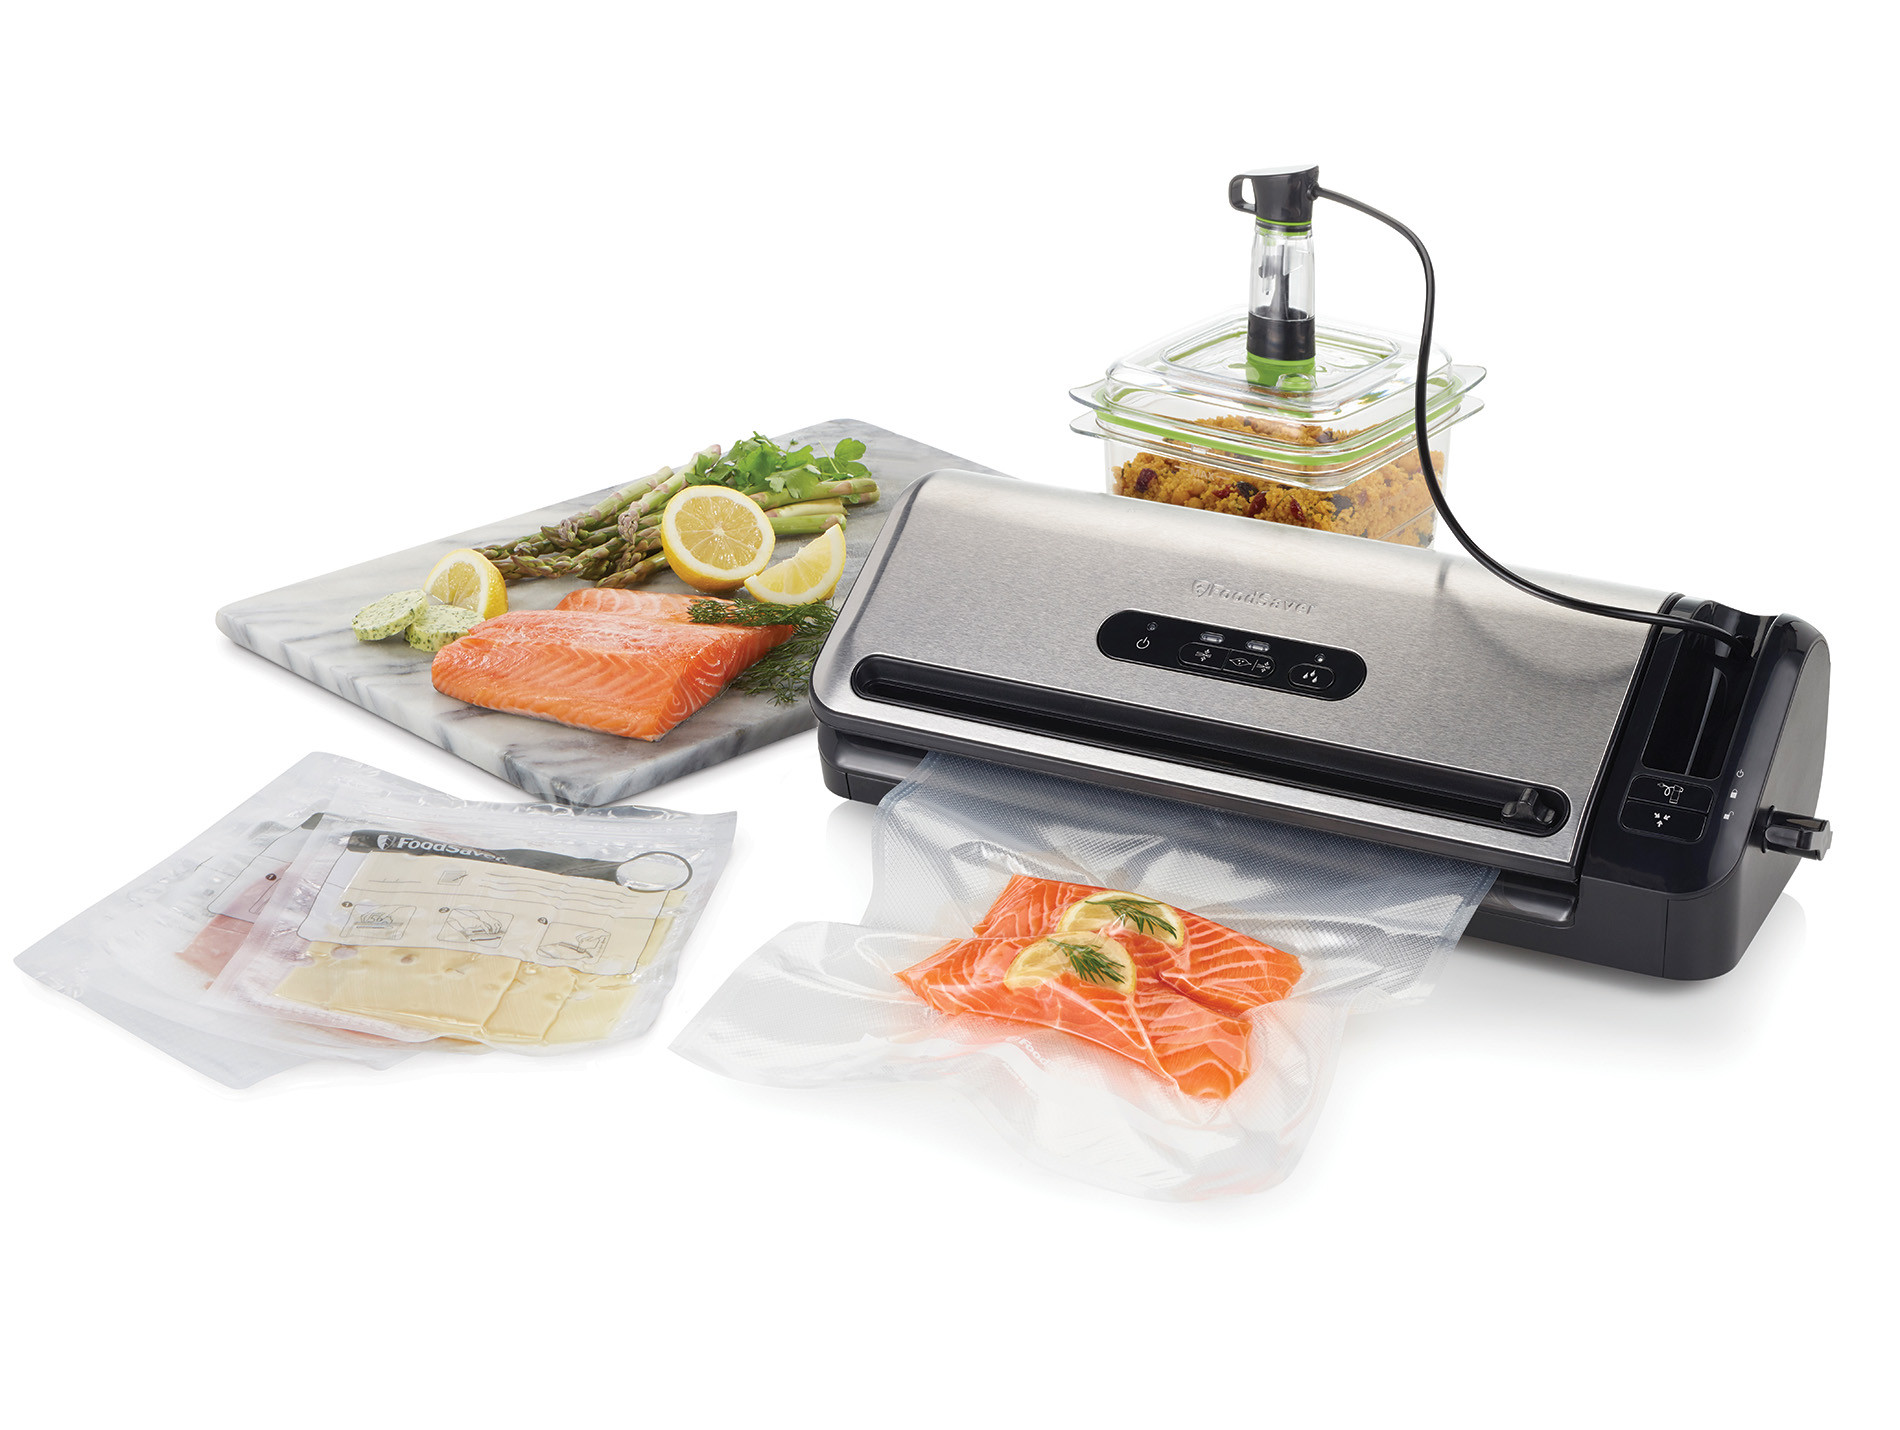 Machine mise sous vide automatique FOODSAVER FFS017X0